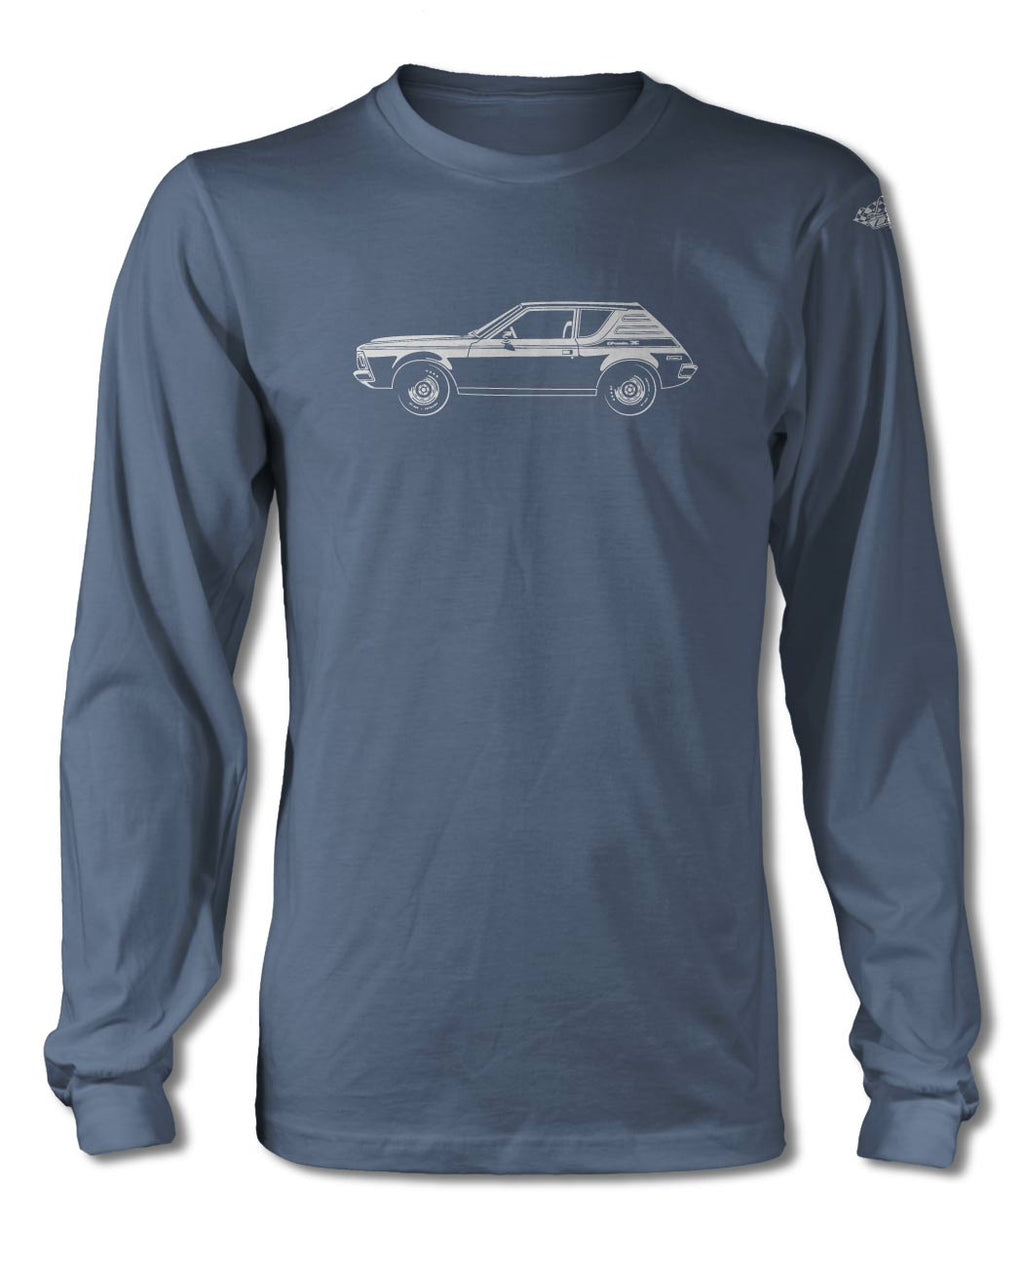 1972 AMC Gremlin X T-Shirt - Long Sleeves - Side View